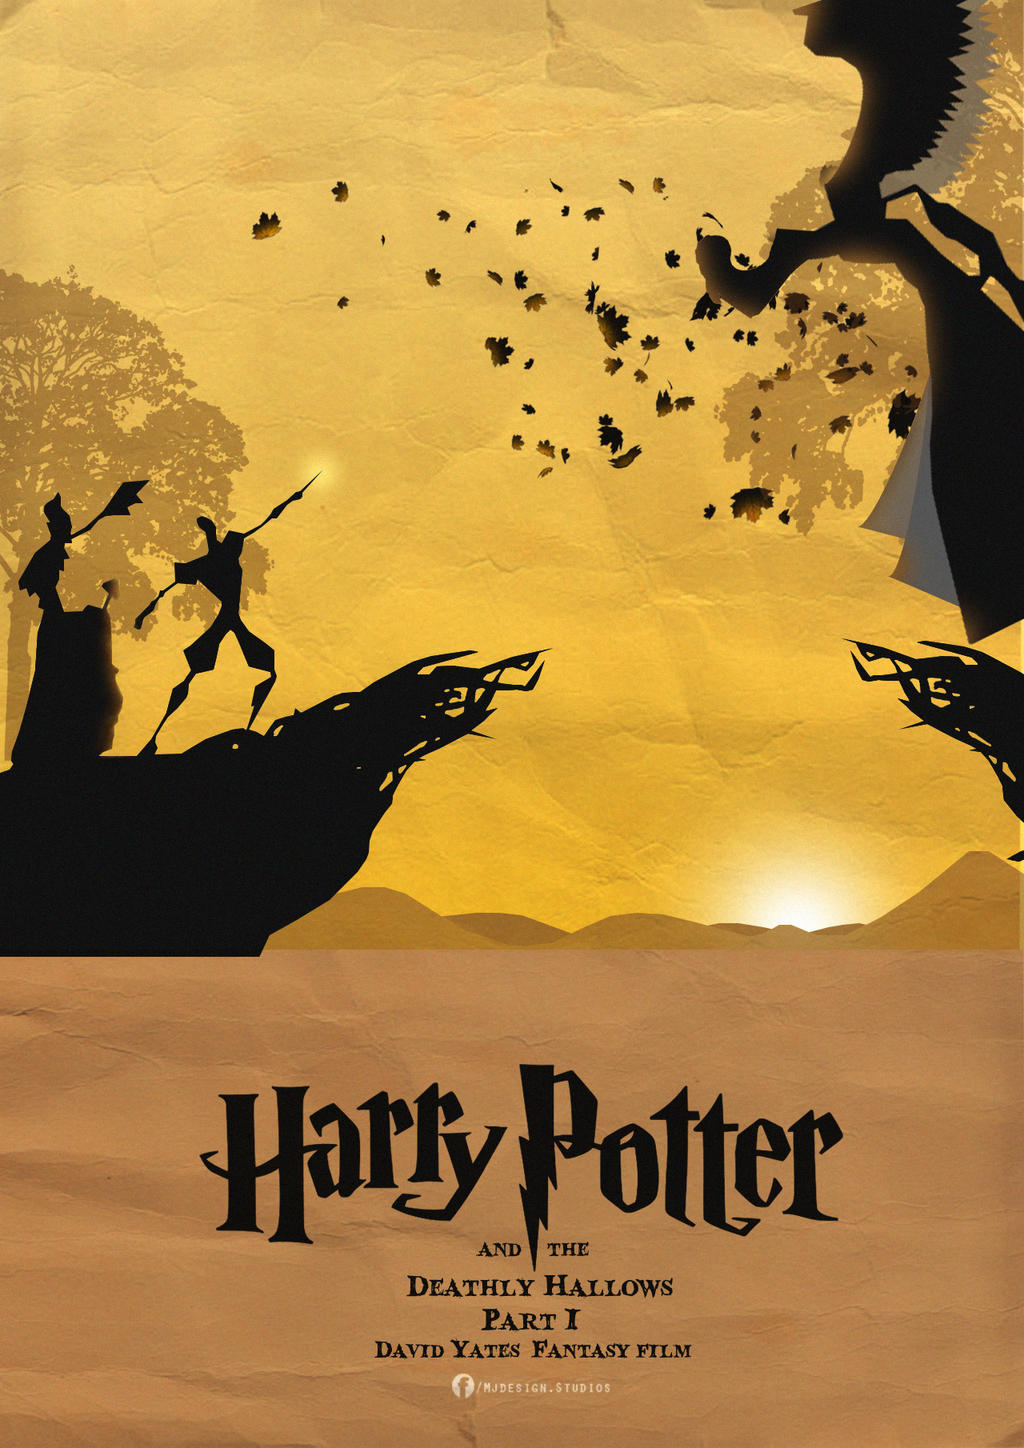 Harry Potter and the Deathly Hallows Part 1 Poste by mjd360 on ...